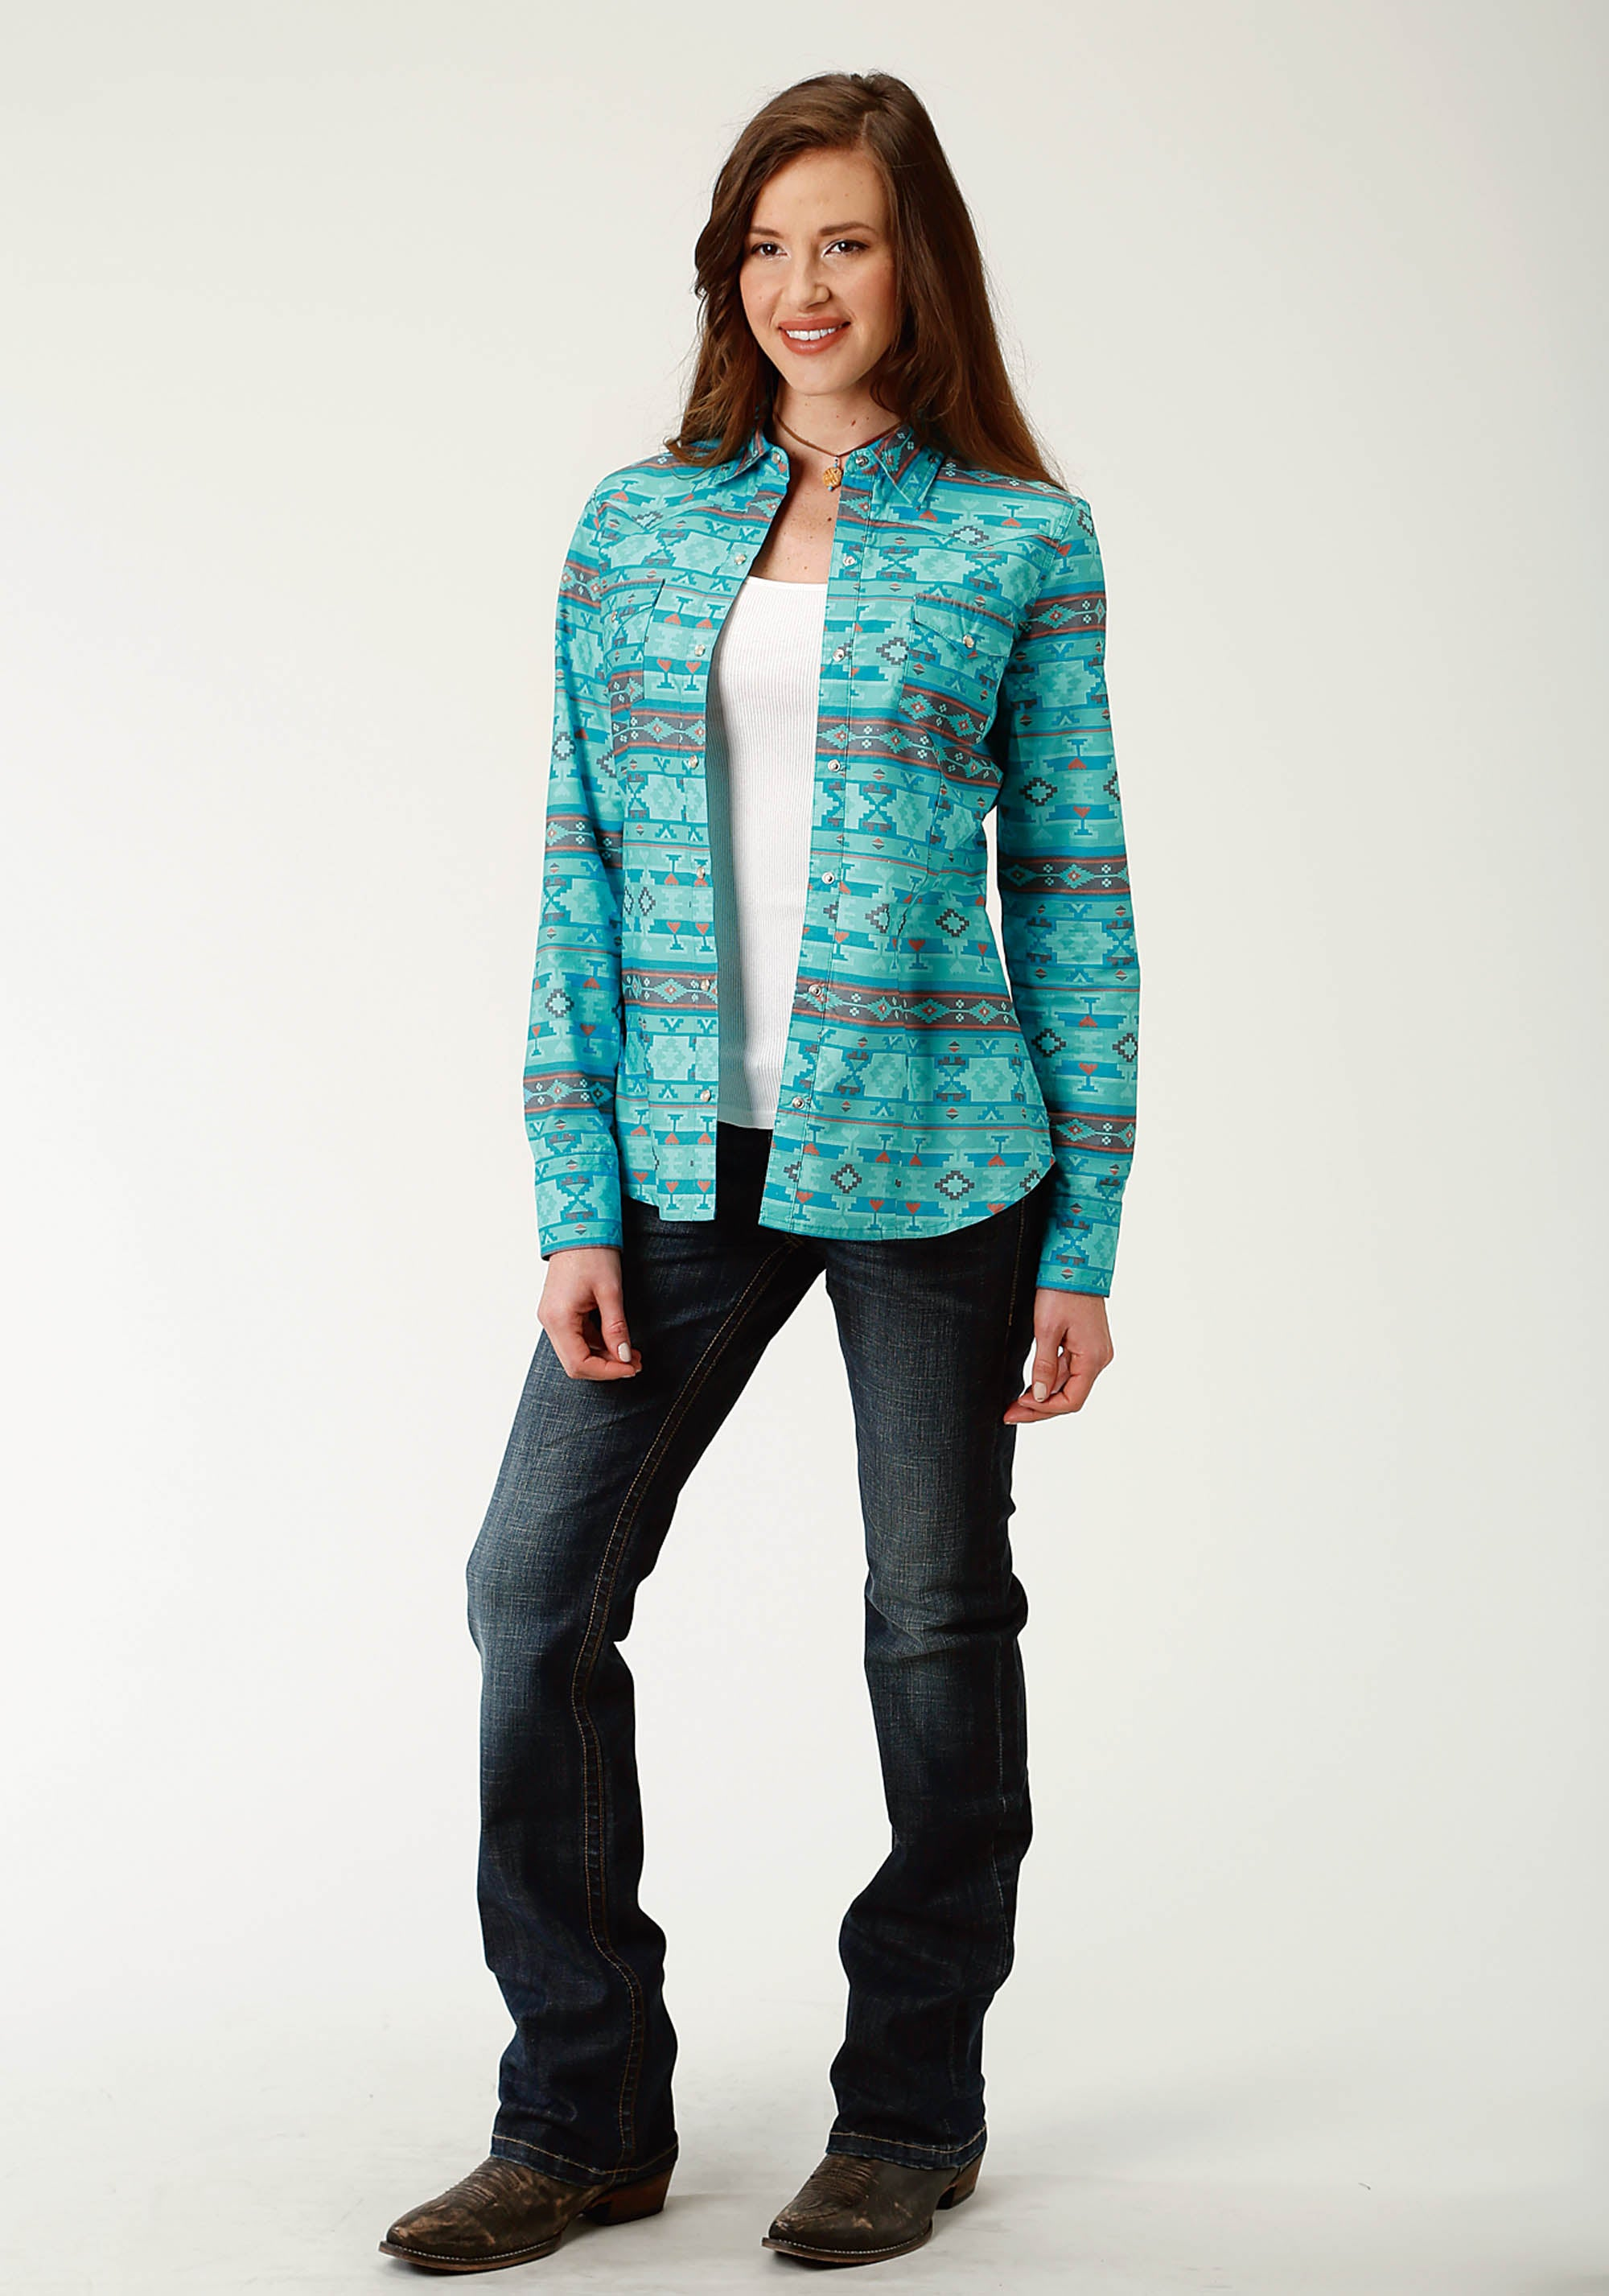 ROPER WOMENS BLUE 2609 BLUE HORIZON AZTEC WEST MADE COLLECTION LONG SLEEVE